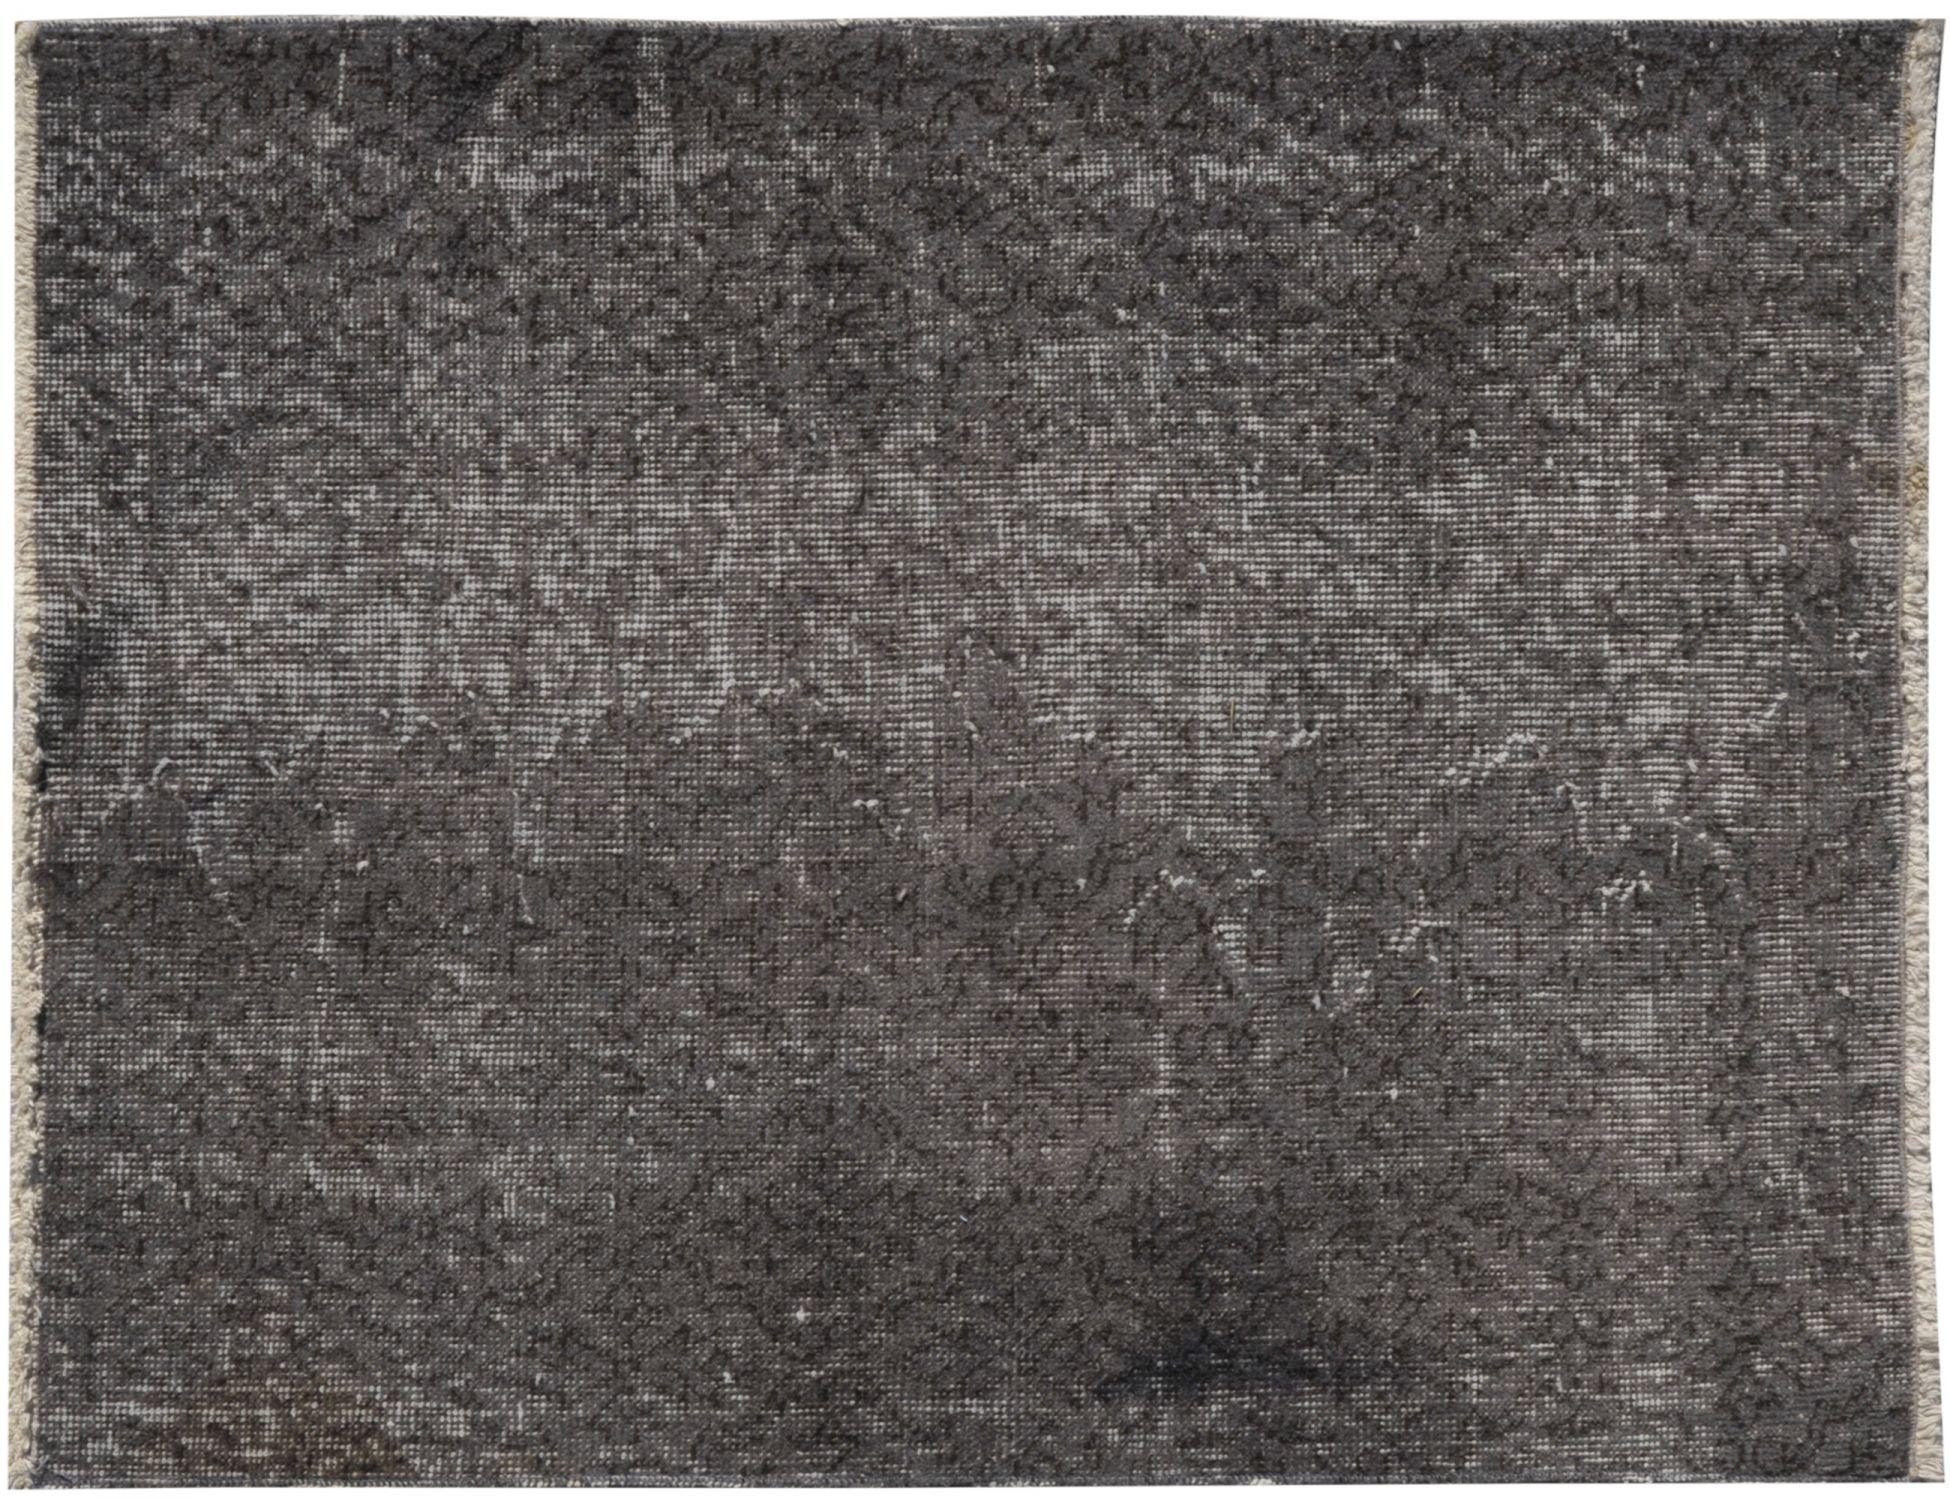 Vintage Carpet  grey <br/>98 x 83 cm